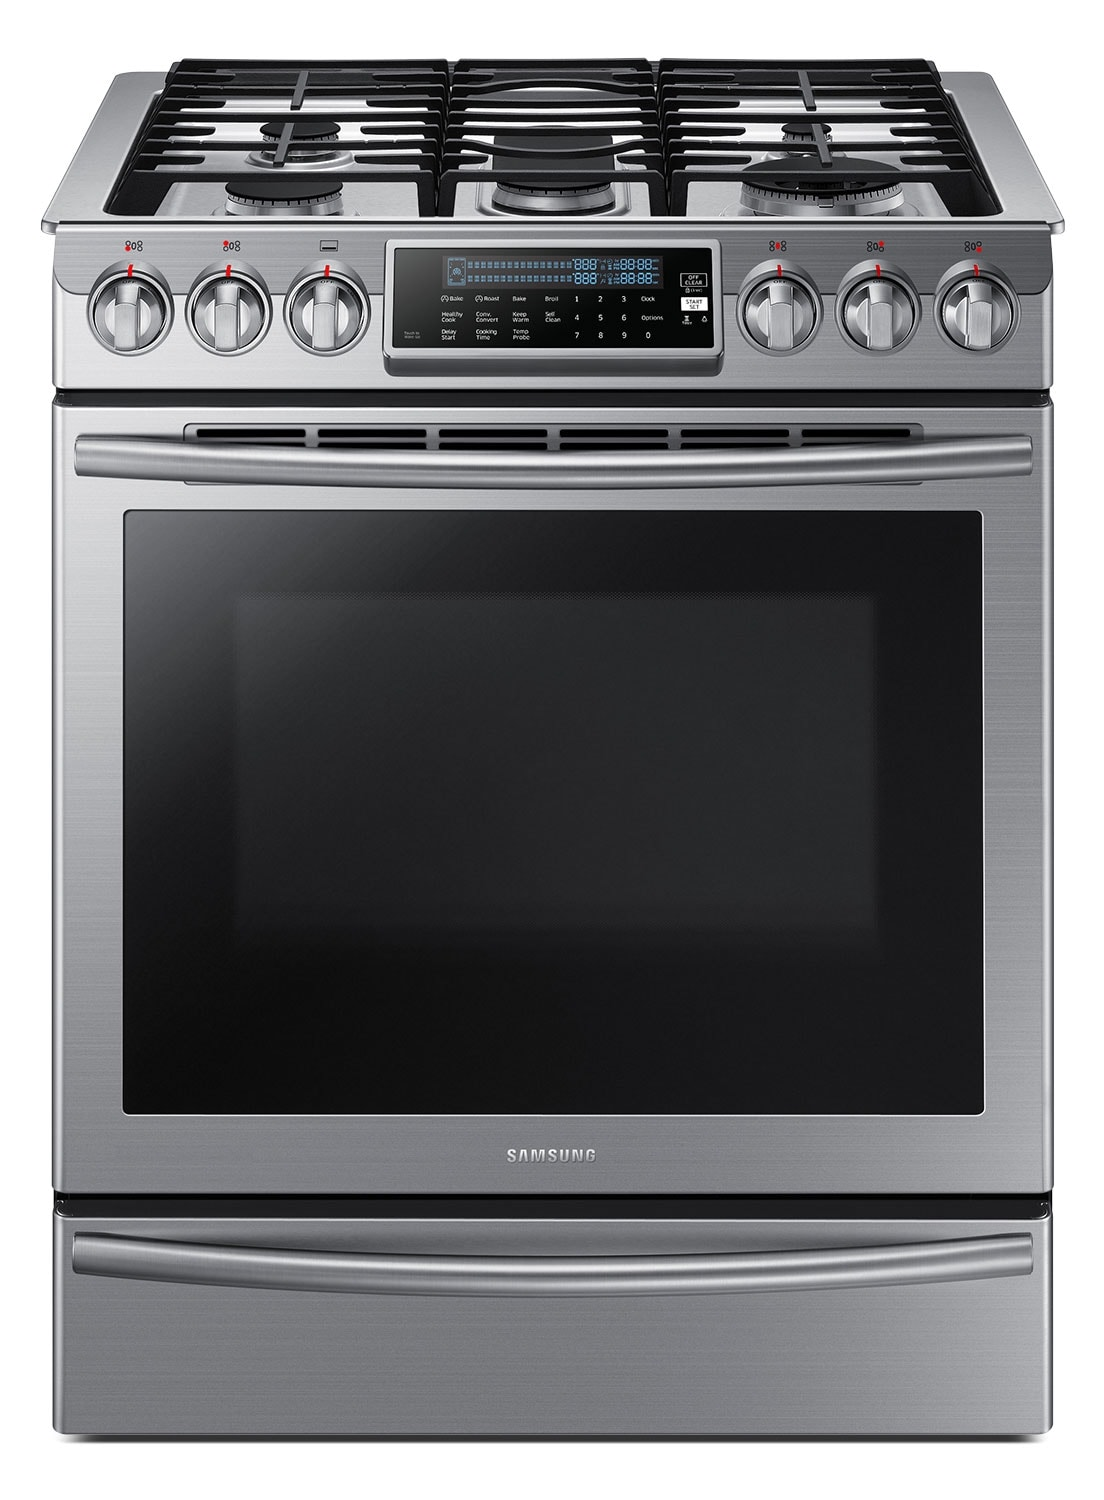 Samsung Stainless Steel Slide In Gas Range 5 8 Cu Ft